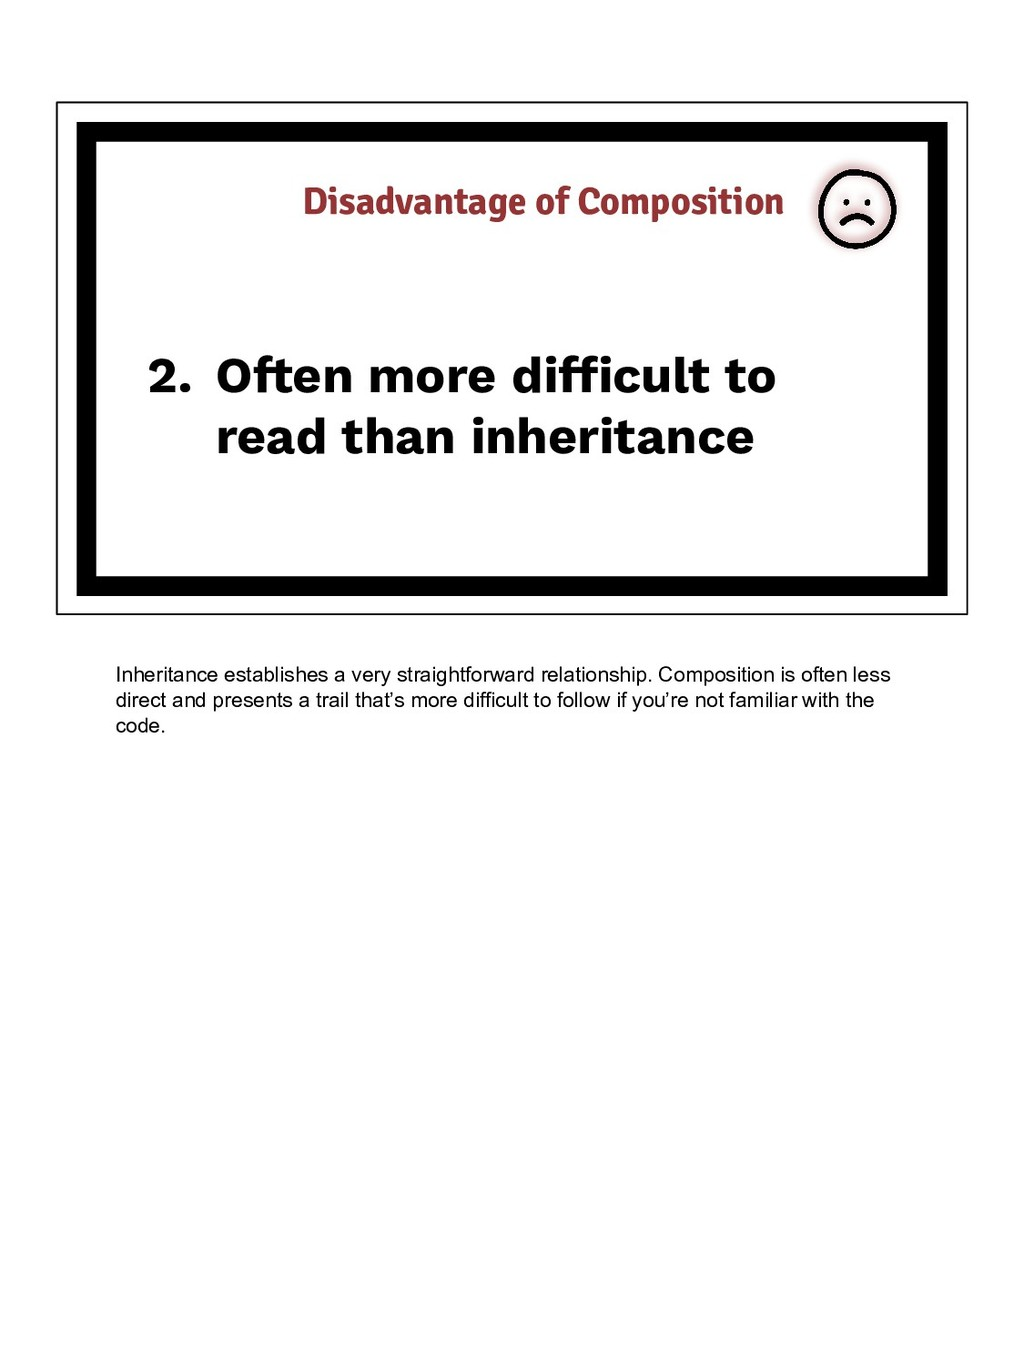 2. Often more difficult to read than inheritance...